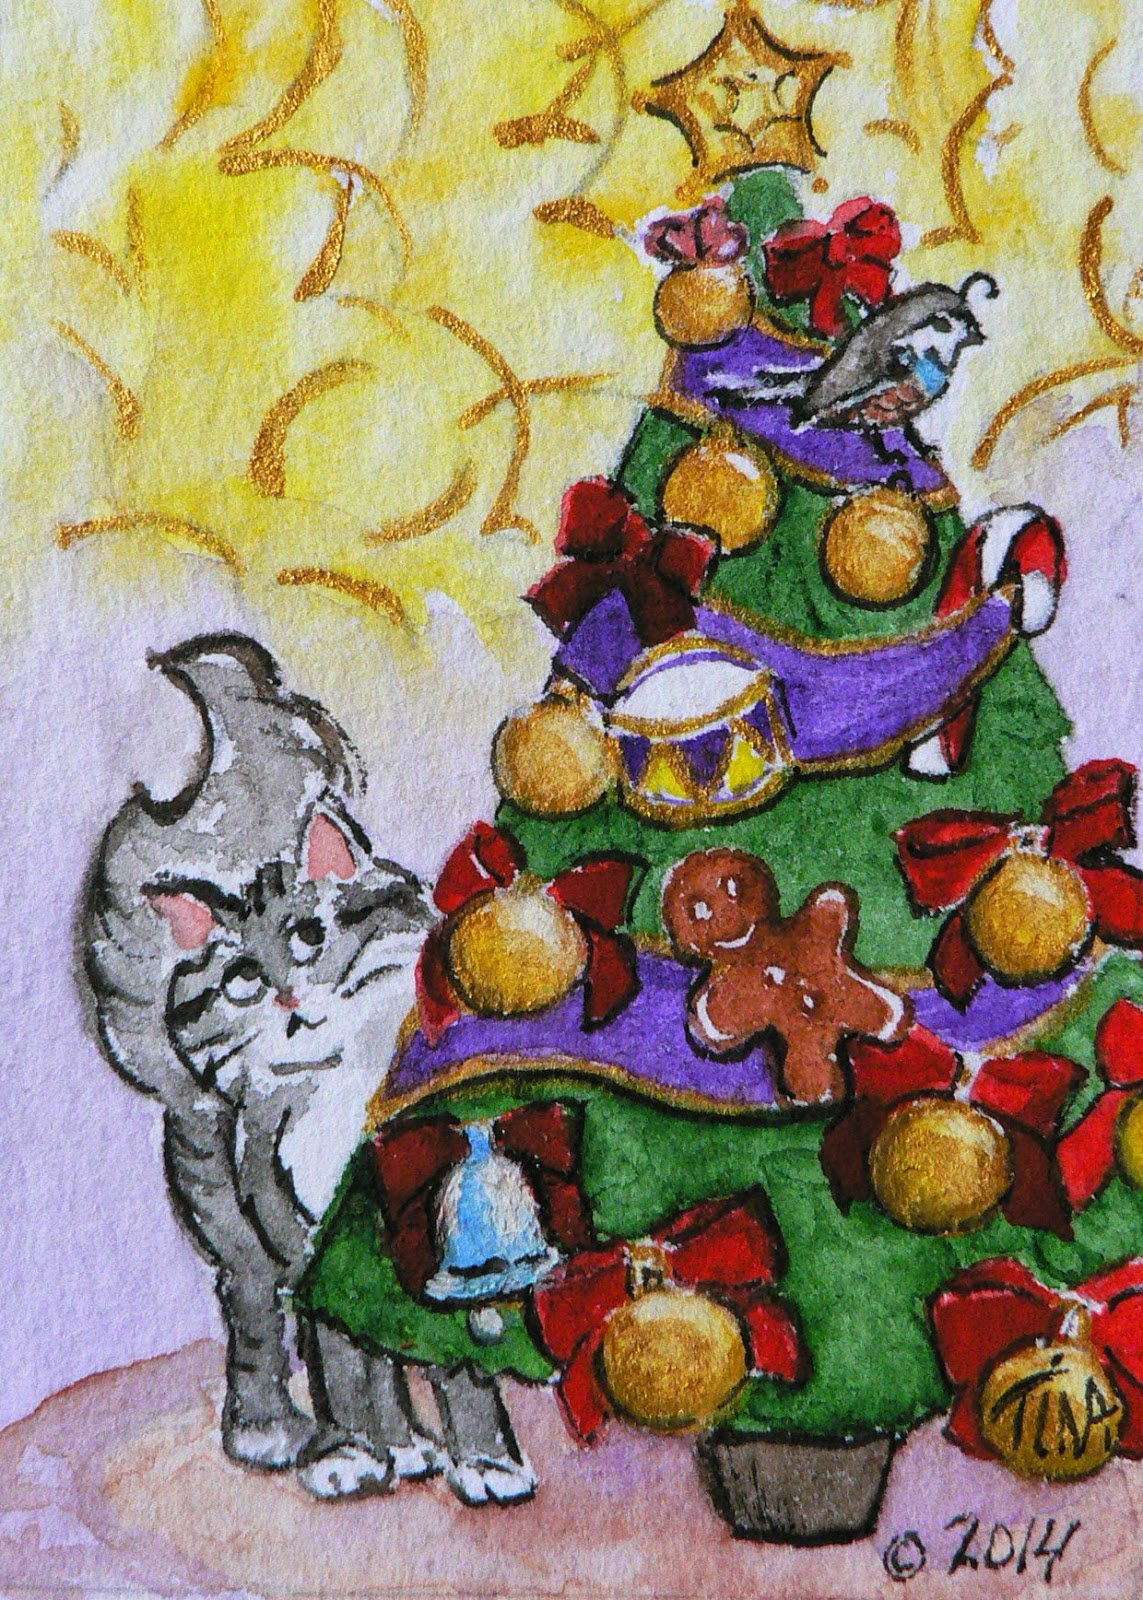 """Partridge in a Fir Tree"" 3.5x2.5"" watercolor on paper, ©2014 Tina M Welter  Grey cat thinking about jumping for the partridge in the Christmas tree."